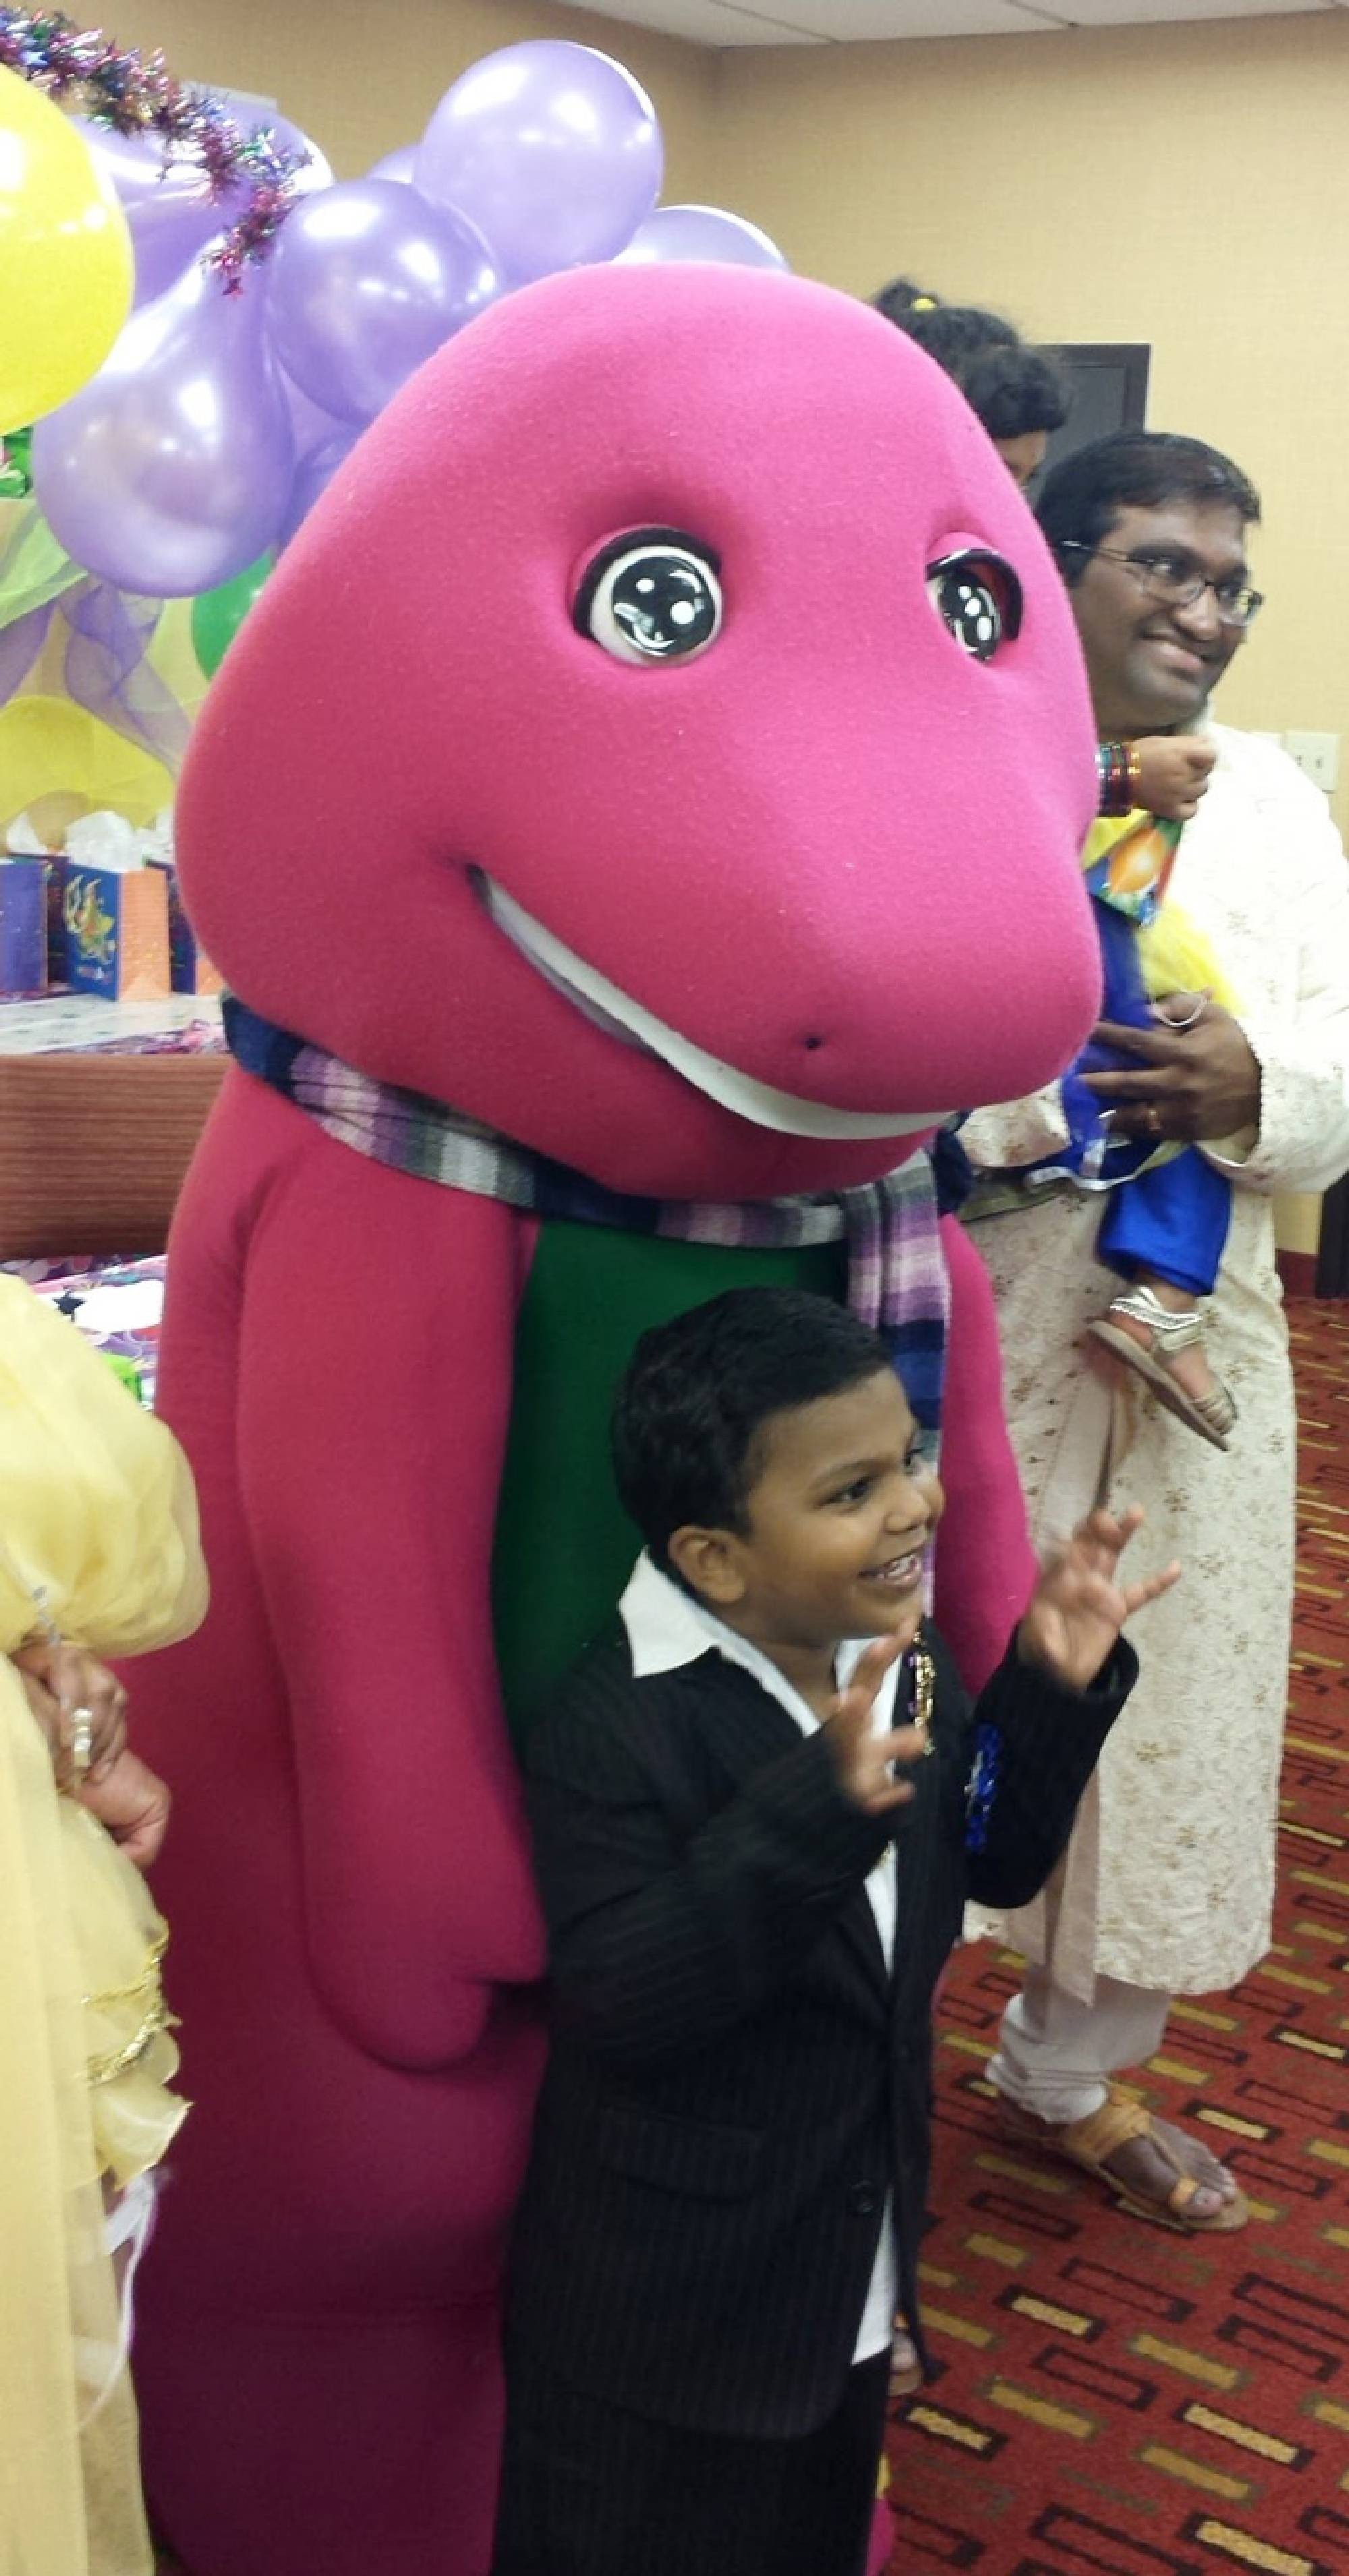 Purple dinosaur costumed character at birthday party in Cary